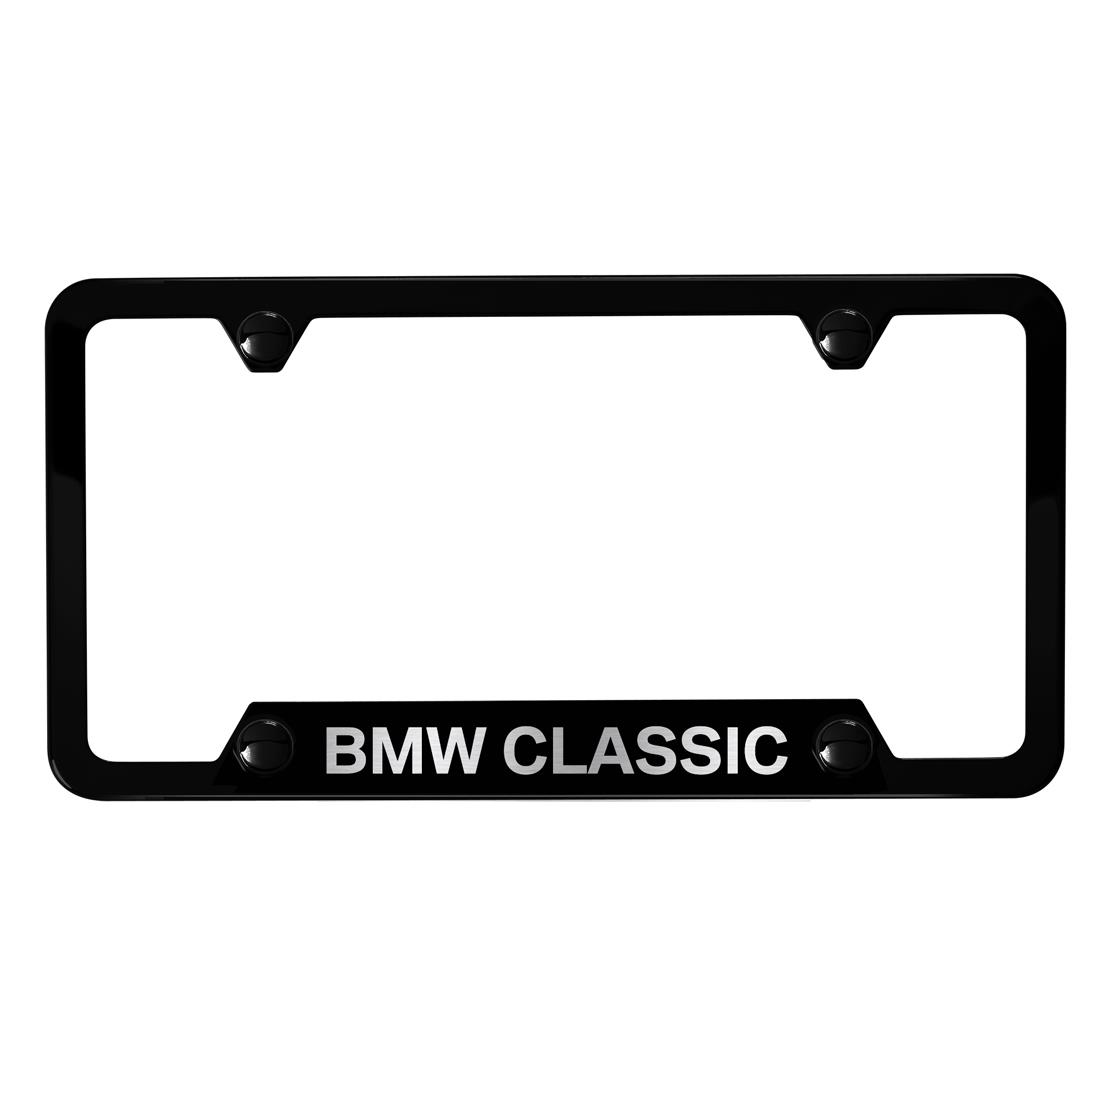 Black BMW Classic license plate frame